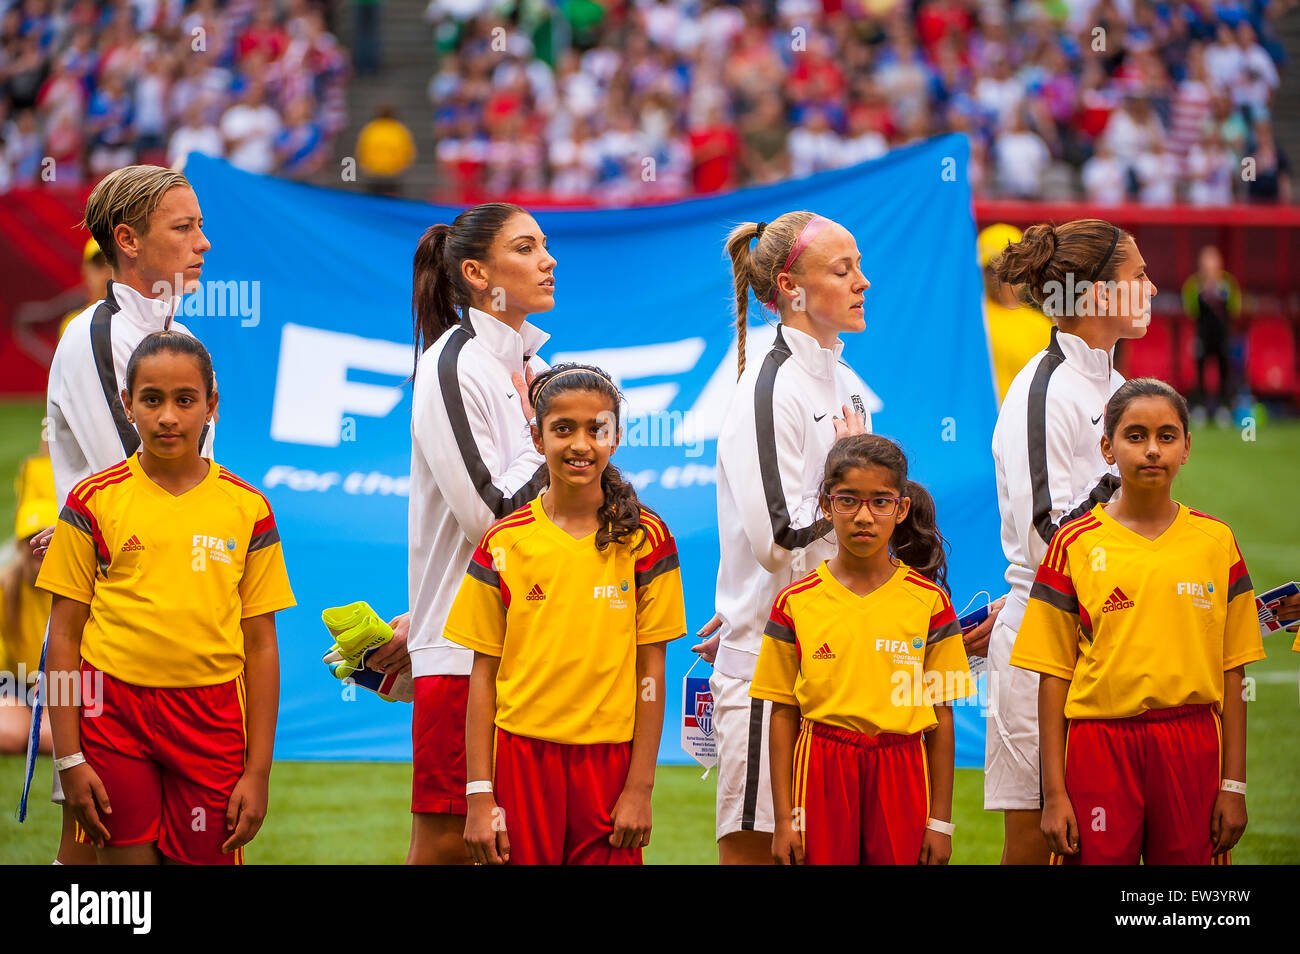 Vancouver, Canada. 16th June, 2015. Team United States during the national anthem ahead of their opening round match - Stock Image